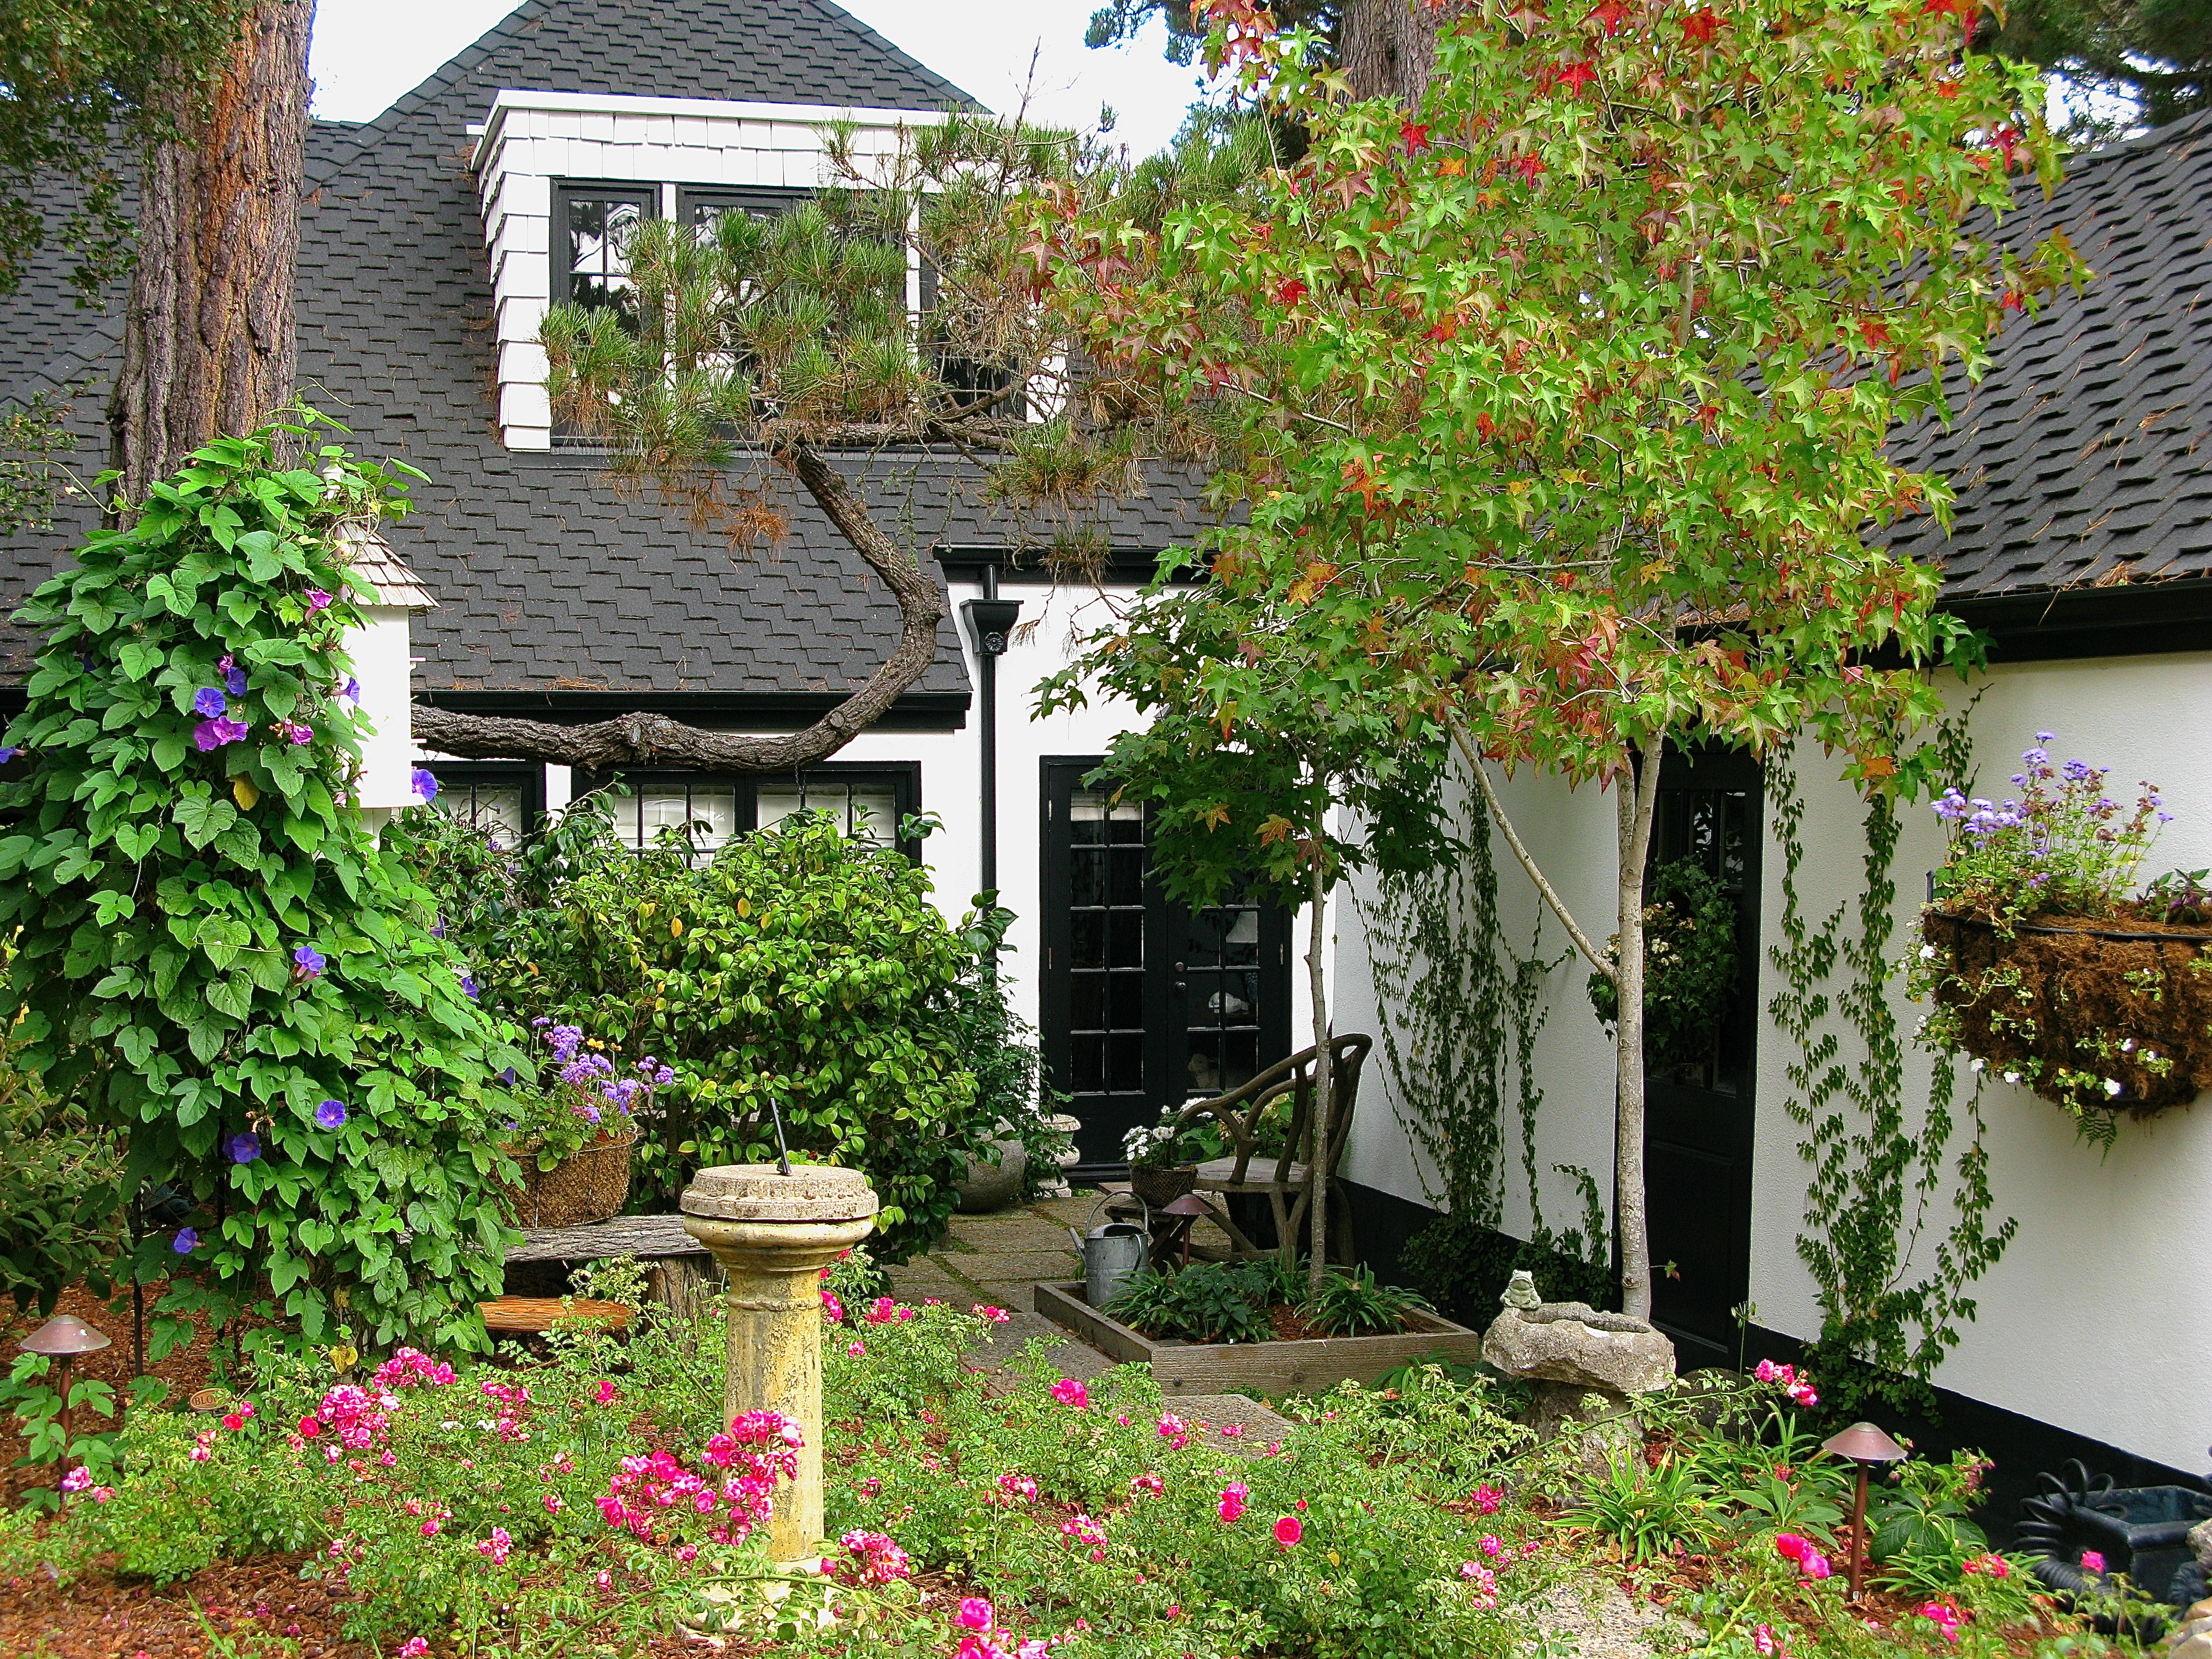 Kingscote a carmel english cottage once upon a time tales from carmel by the sea - English cottage ...